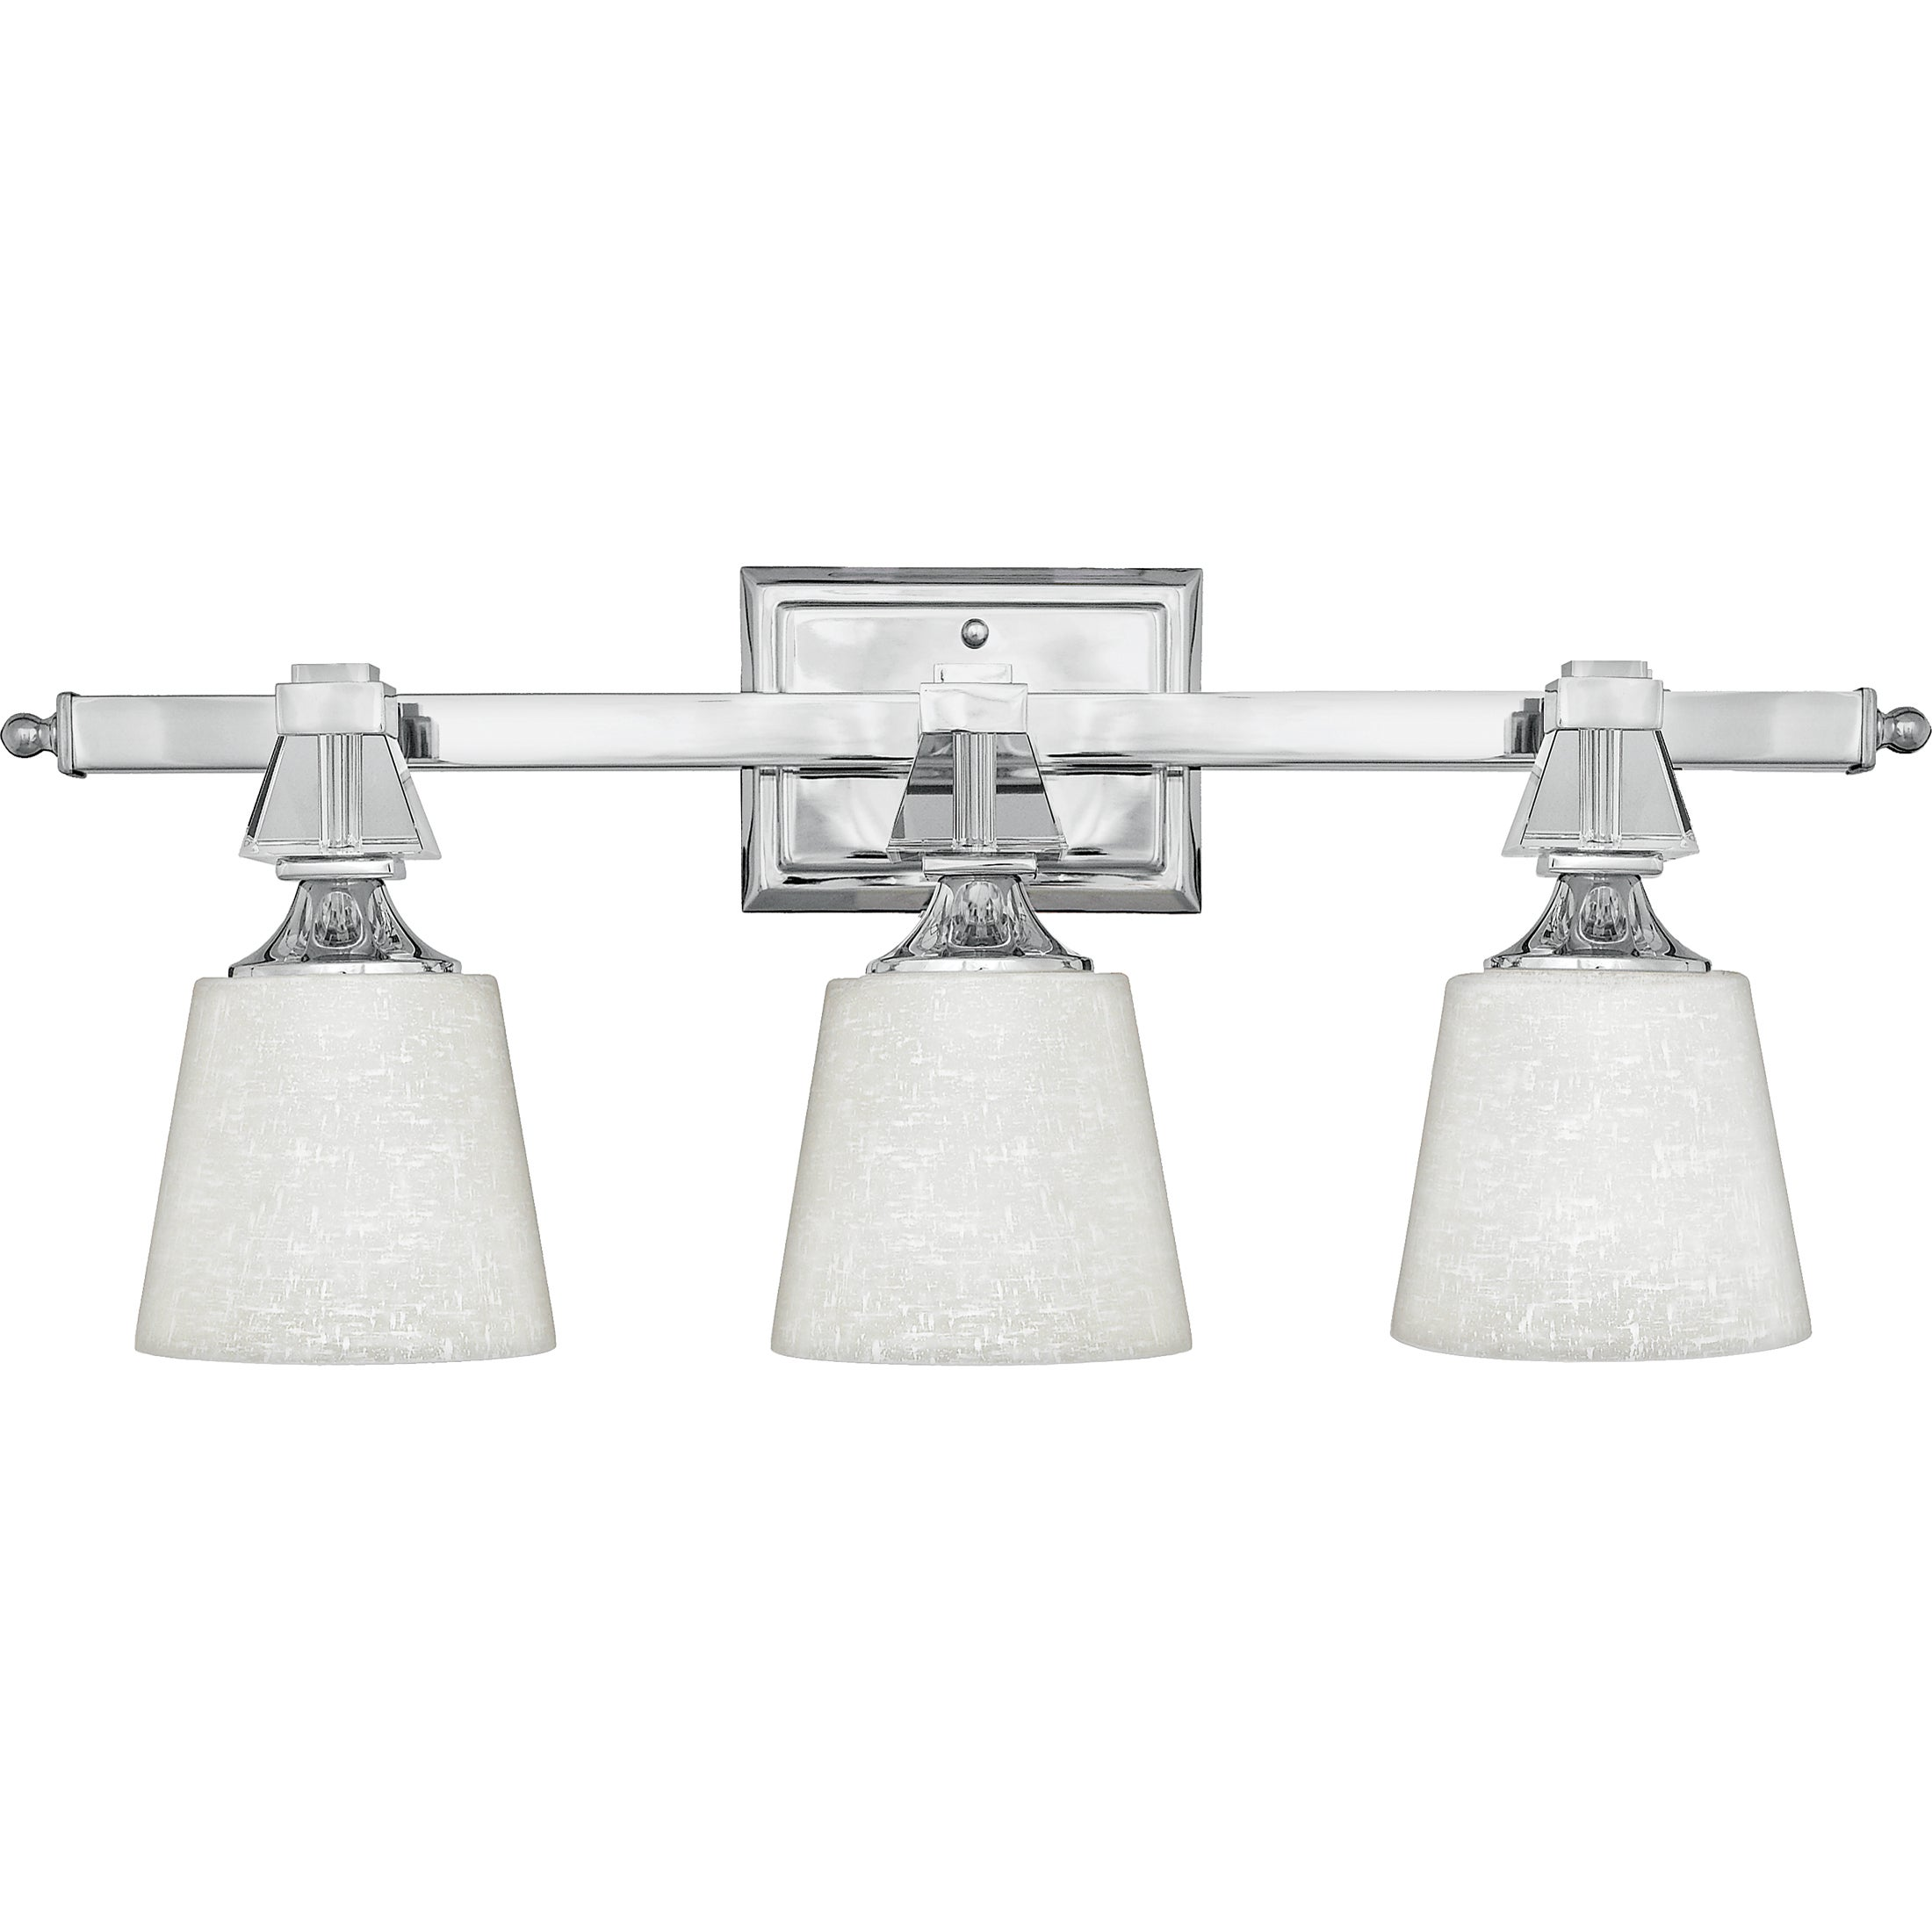 Quoizel 'Deluxe' Three-light Bath Fixture